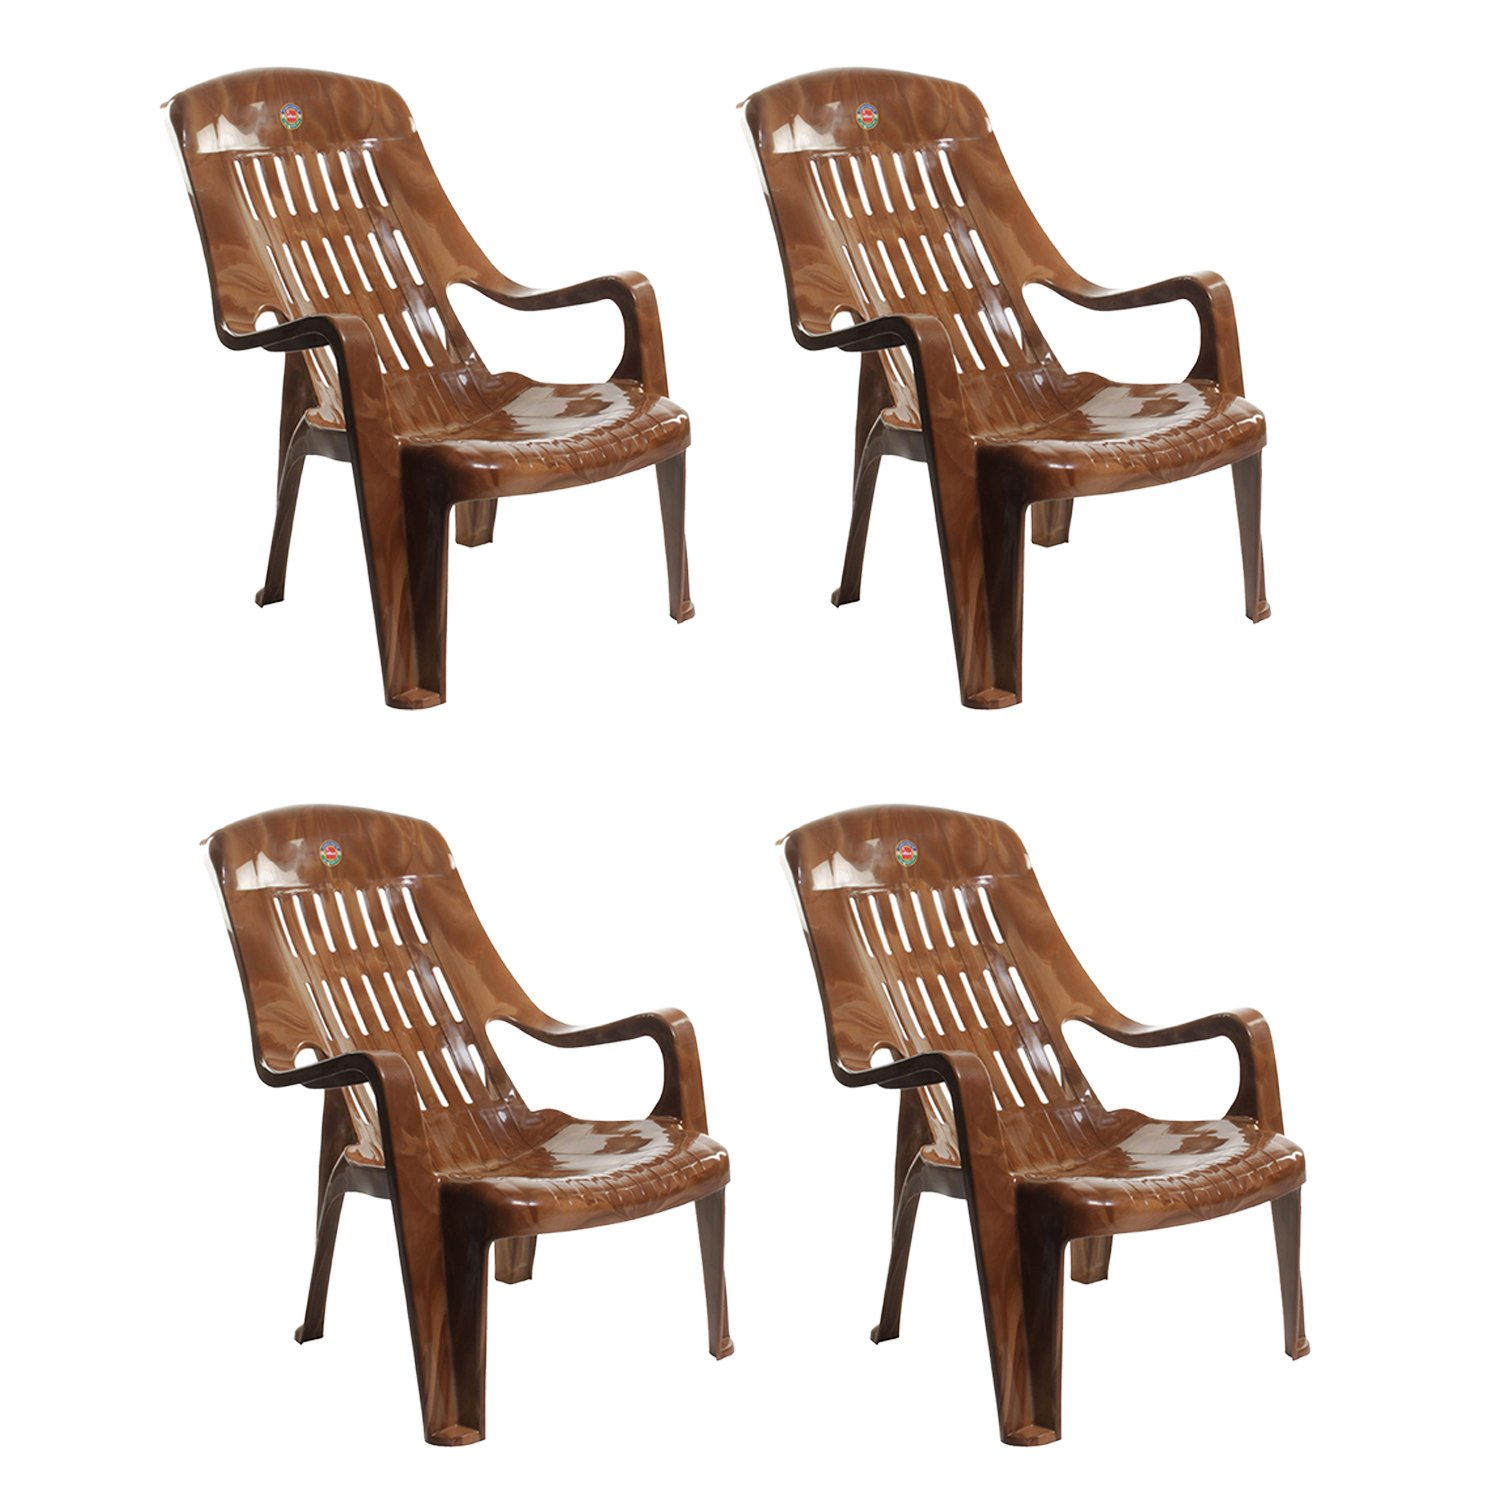 Cello fort Sit Set of 4 Chairs Beige Amazon Home & Kitchen